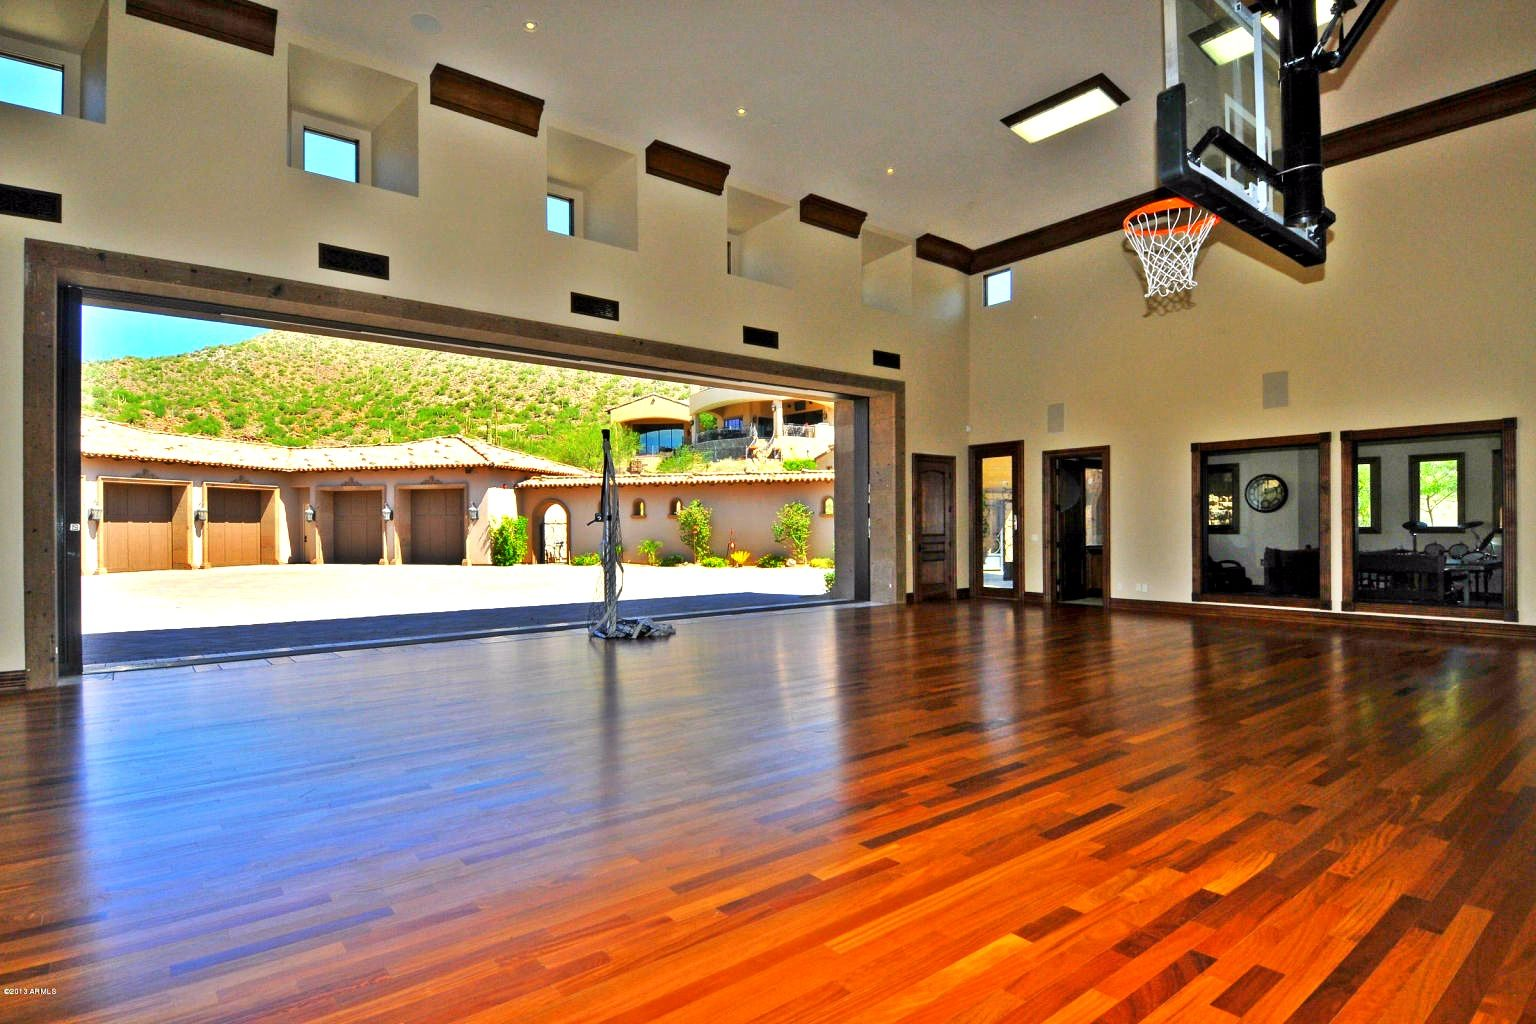 9a357e75336d0d78a9d178911a23823c indoor basketball court diamond point 1 (las sendas,Home Indoor Basketball Court Plans